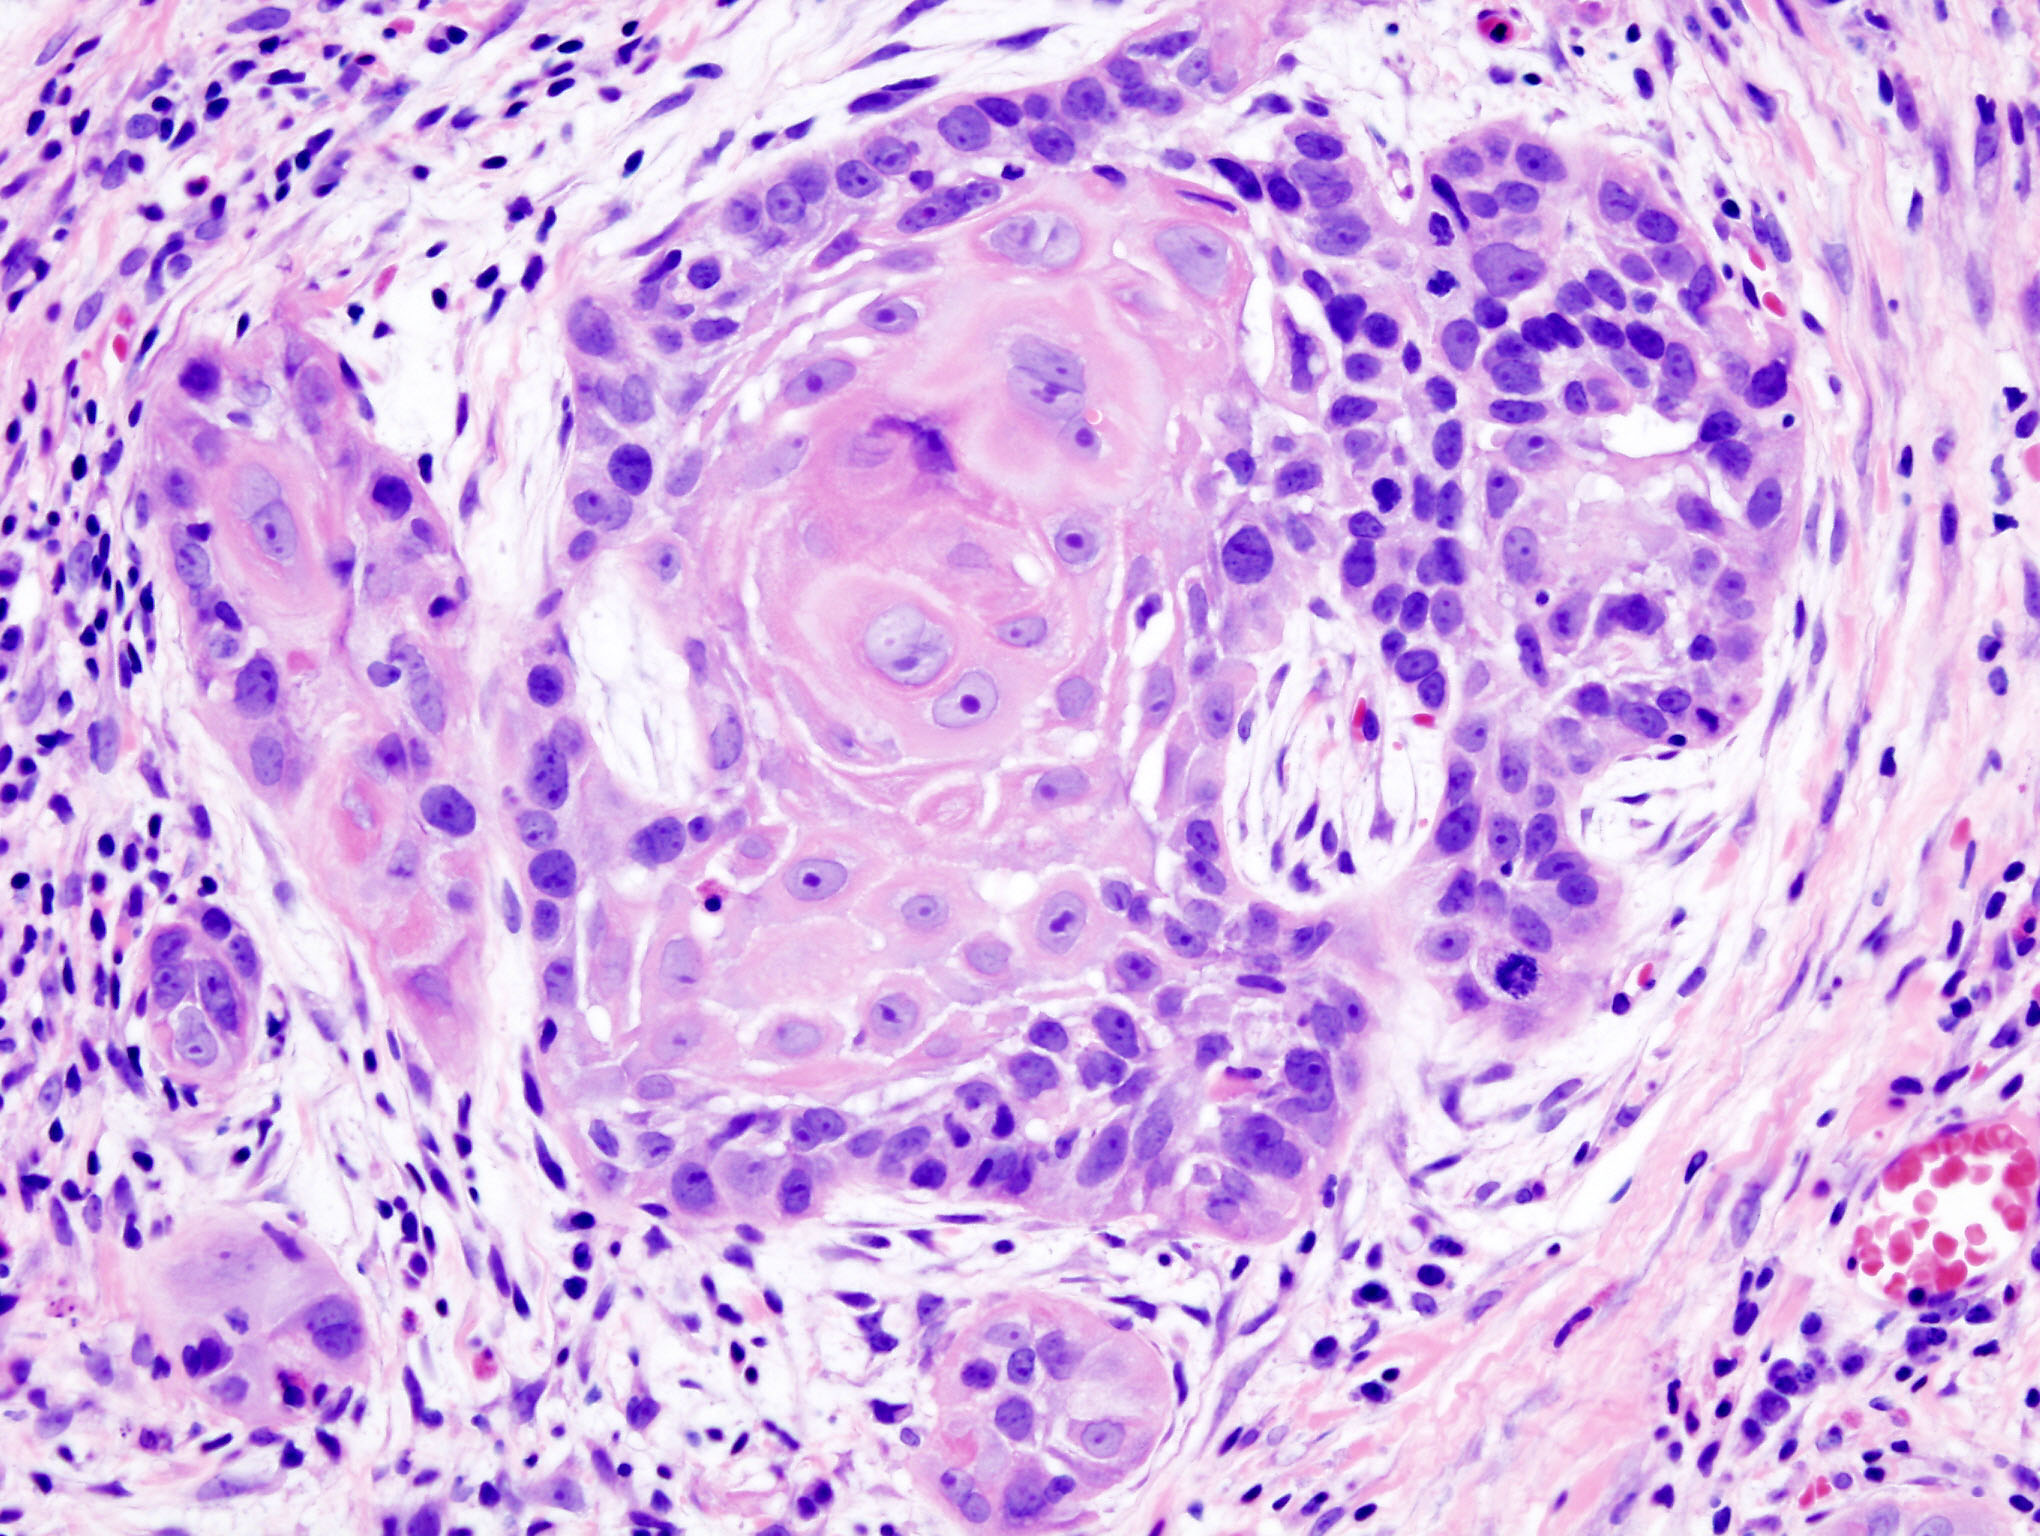 esophageal squamous papilloma and hpv